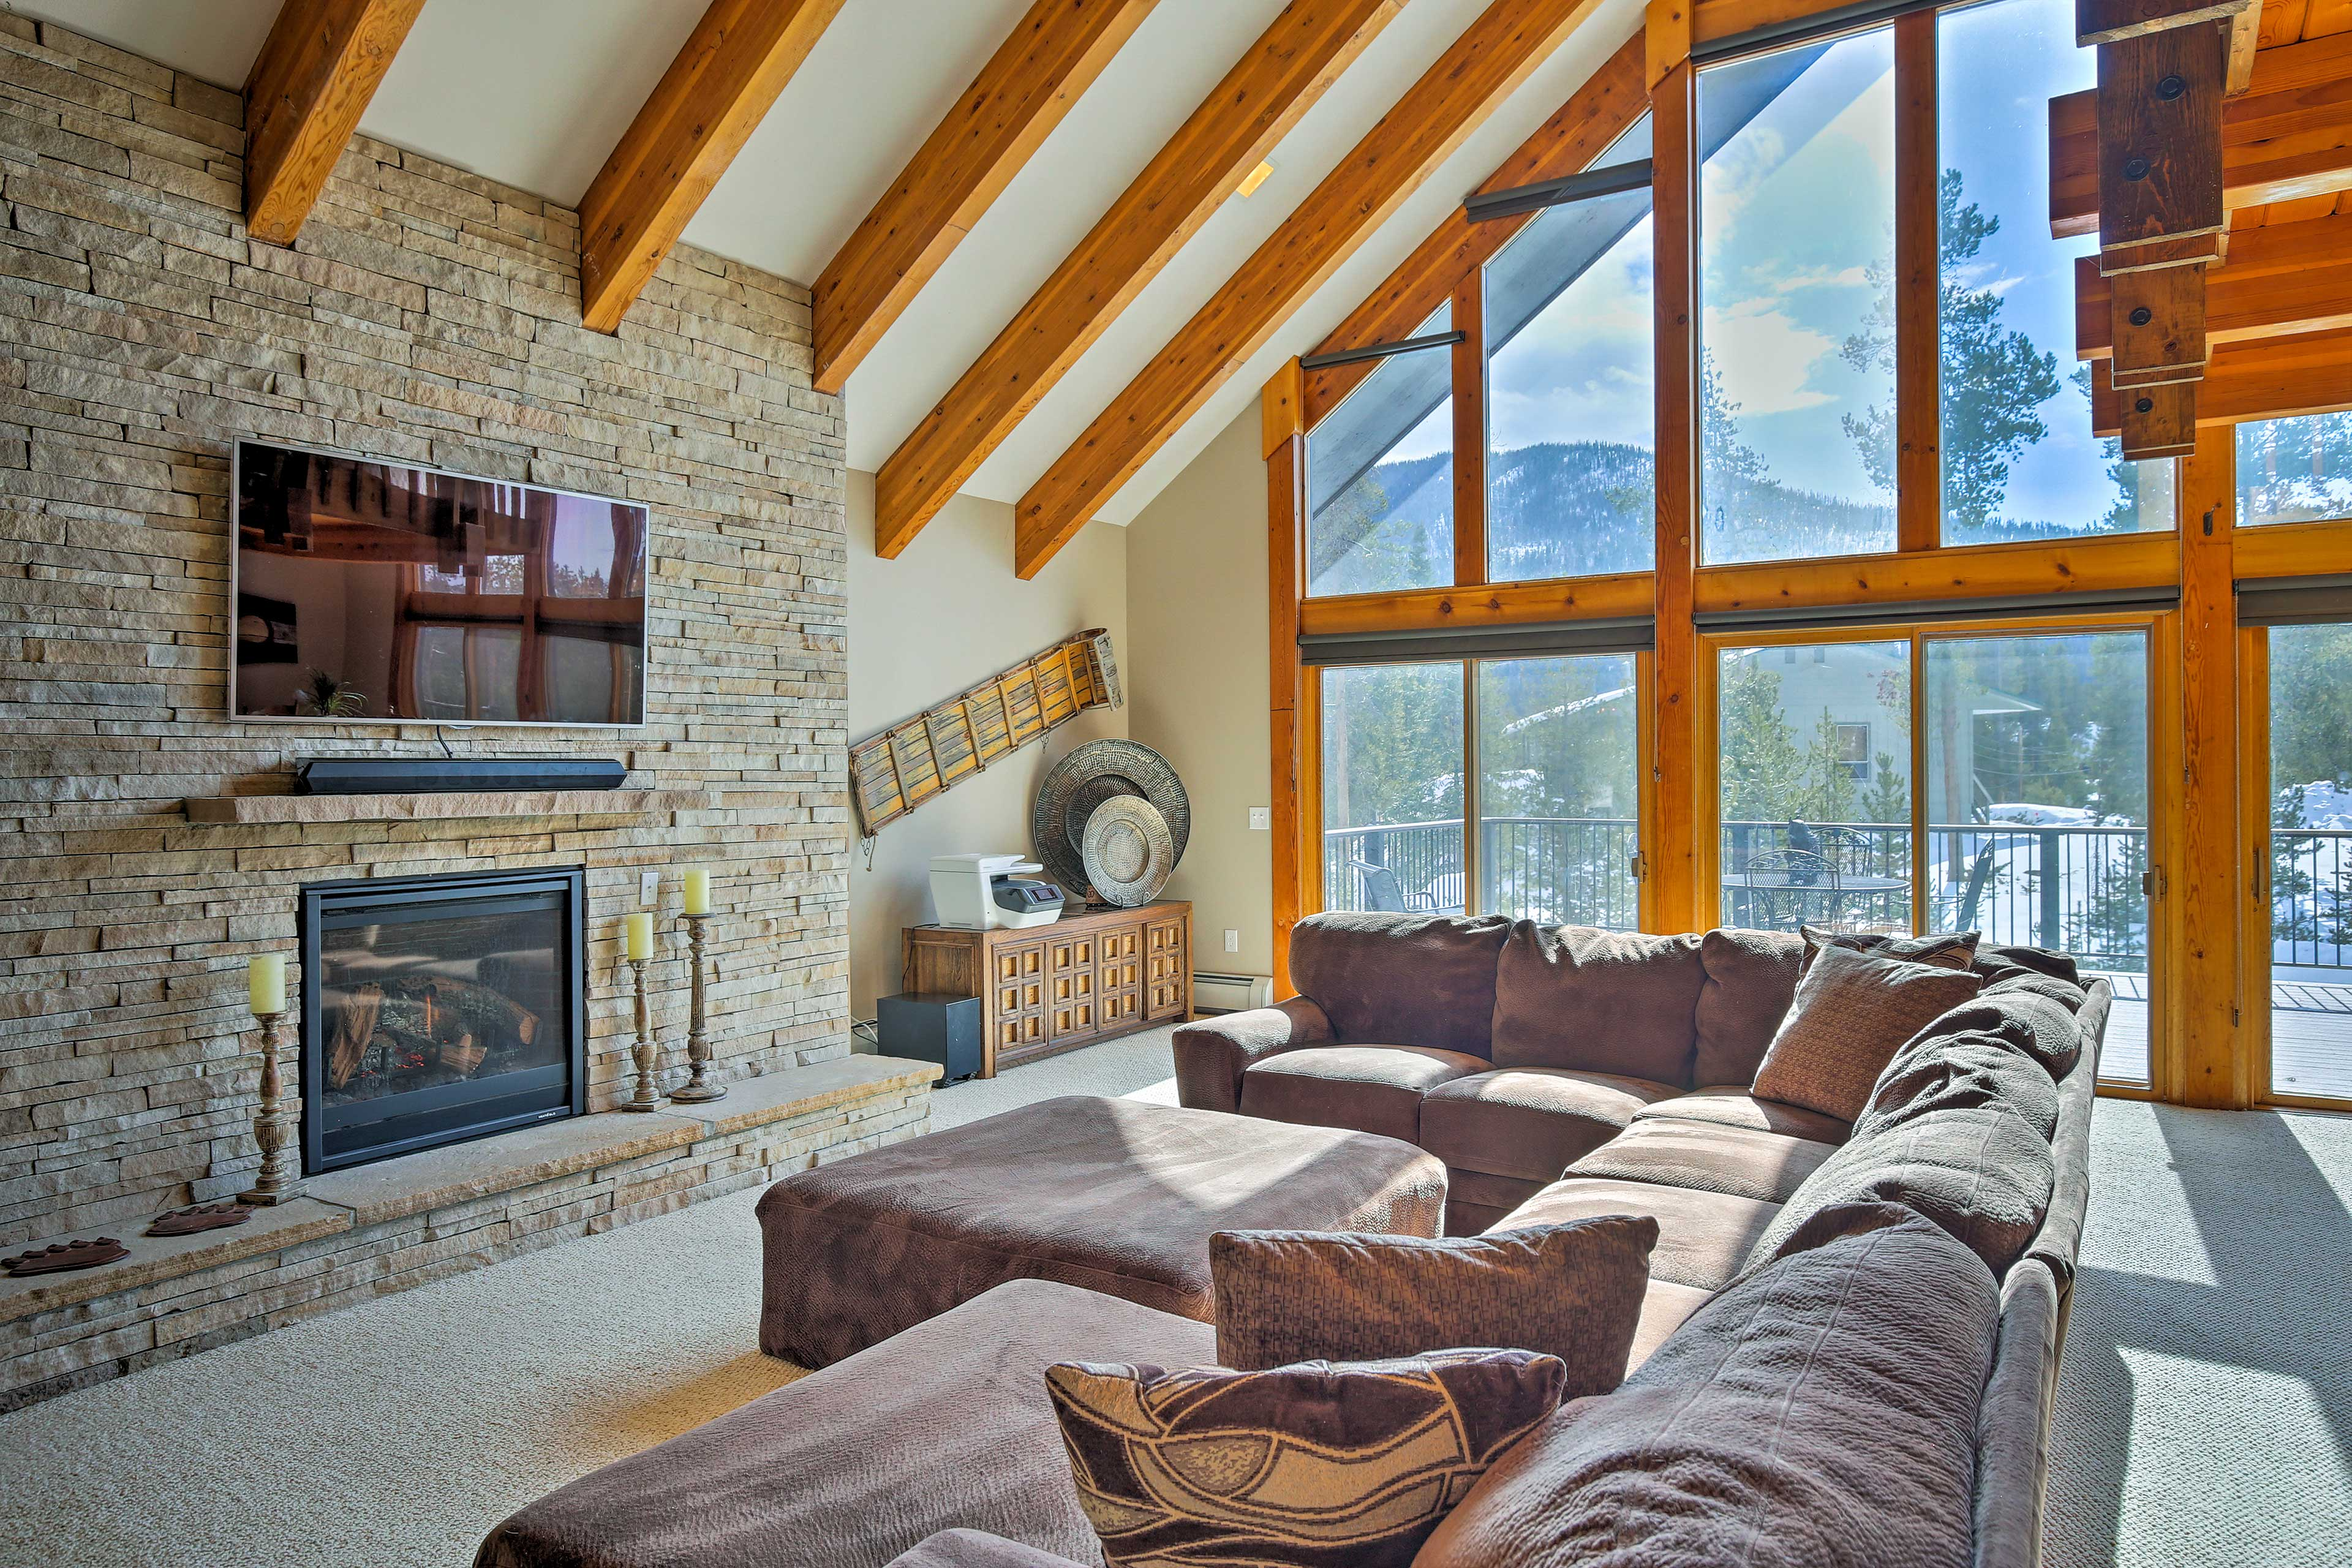 The property boasts 4 bedrooms, 4.5 baths and 4,700 square feet of living space.